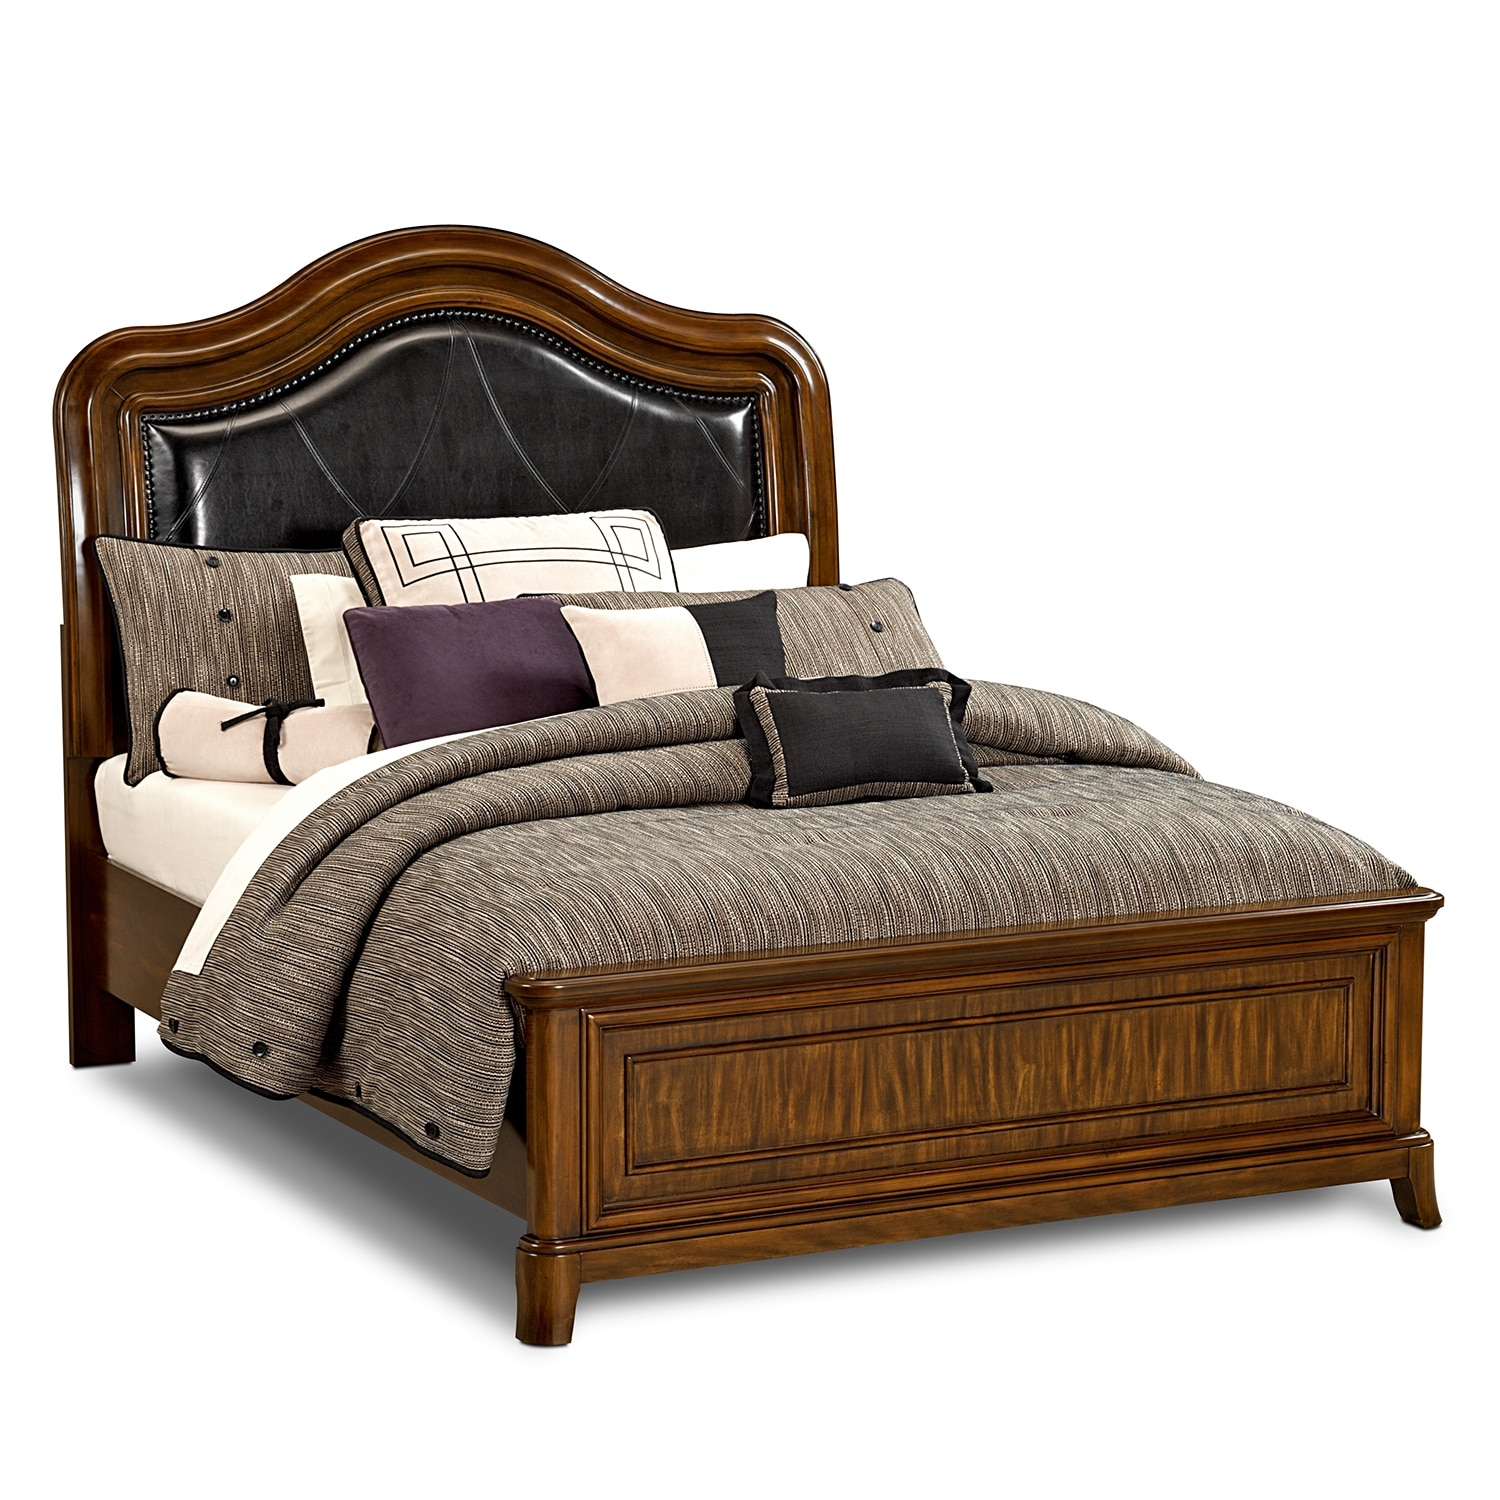 american signature furniture kingston bedroom 6 pc queen bedroom